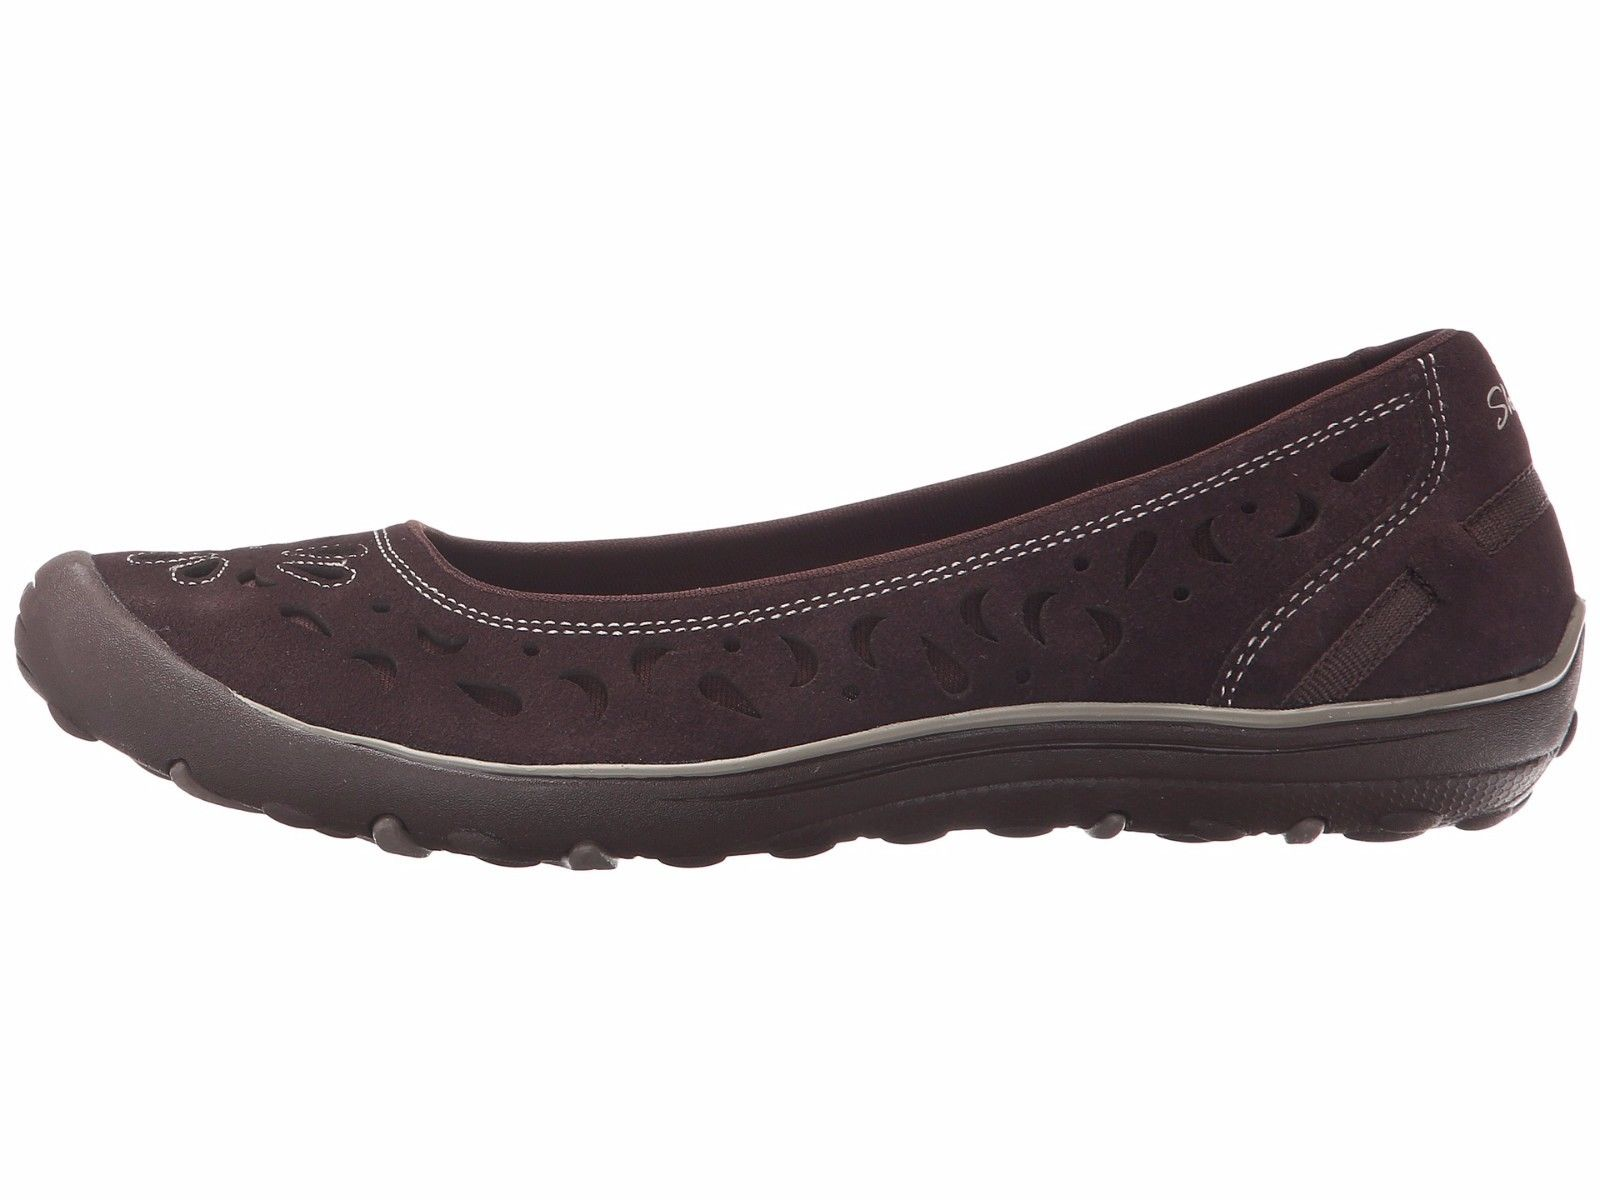 Skechers Earth Fest Chocolate